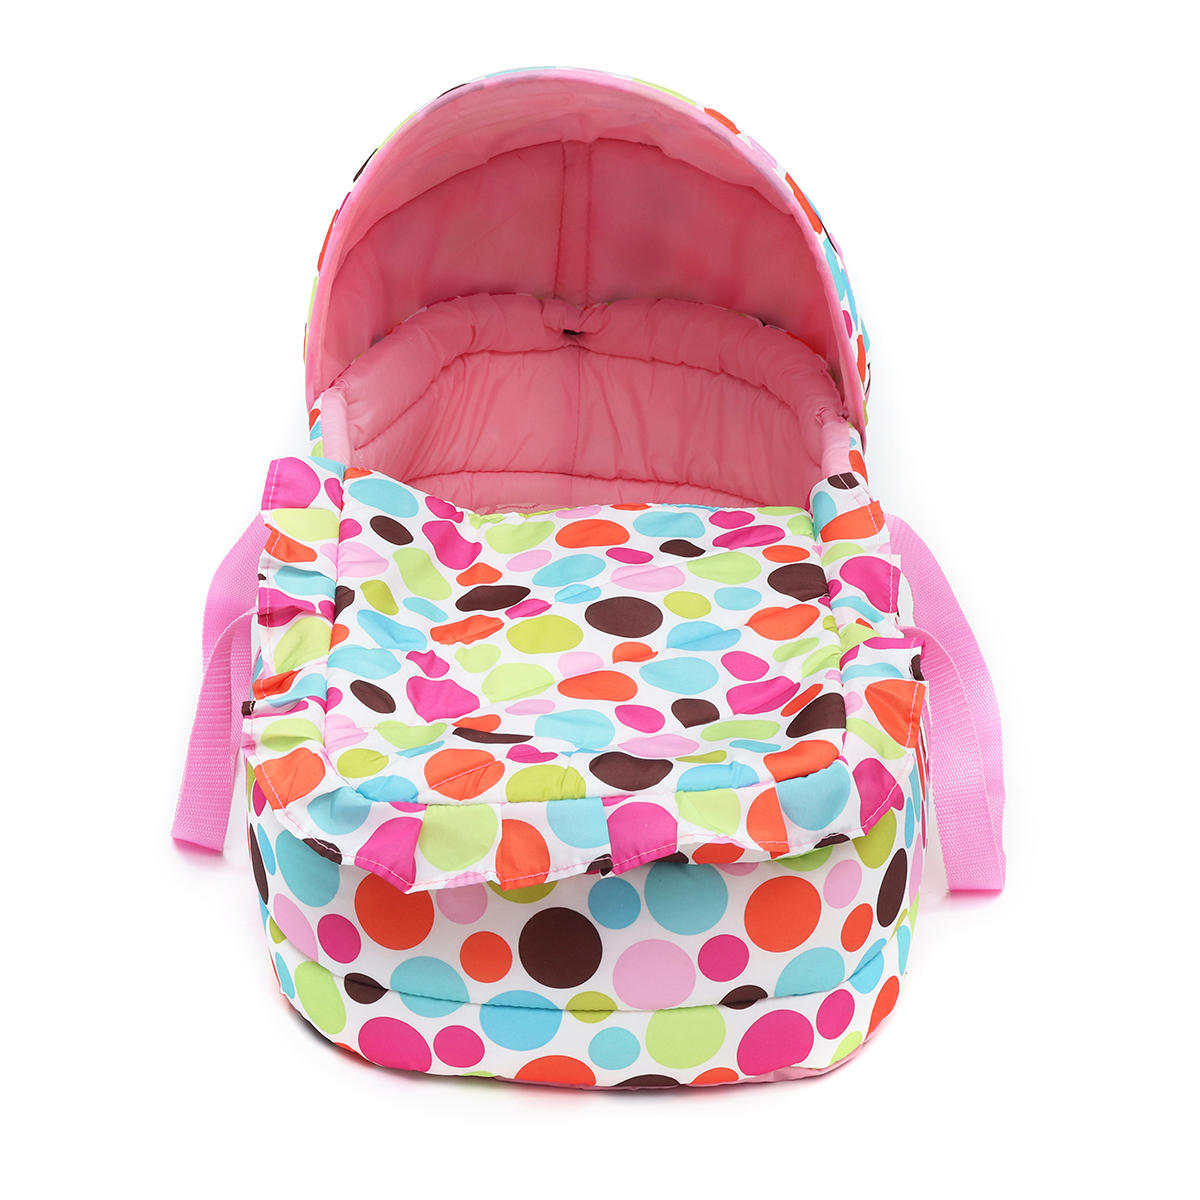 Portable Newborn Baby Infant Moses Basket Bed Baby Cradle Bassinet Travel Comfortable - 10